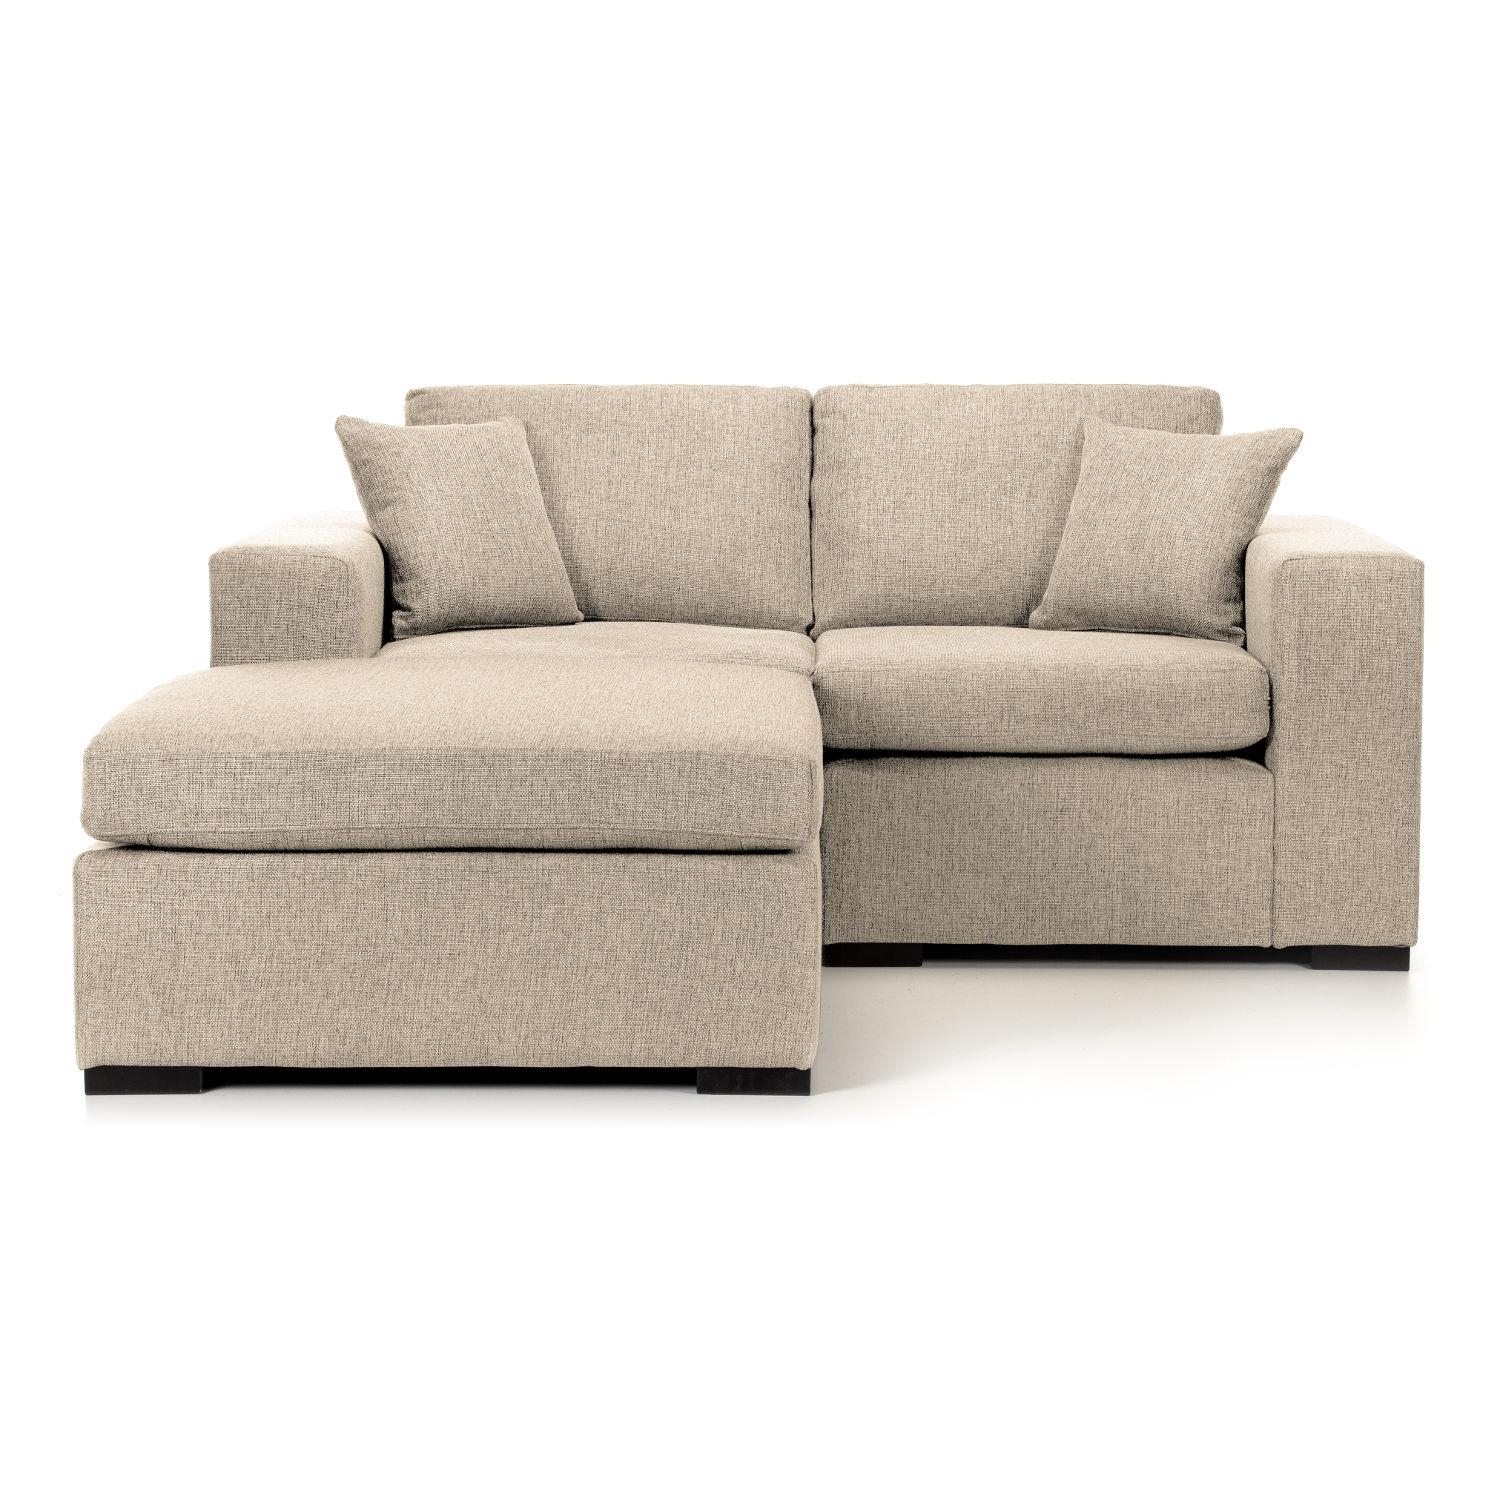 20 Best Collection of Small Modular Sofas  Sofa Ideas